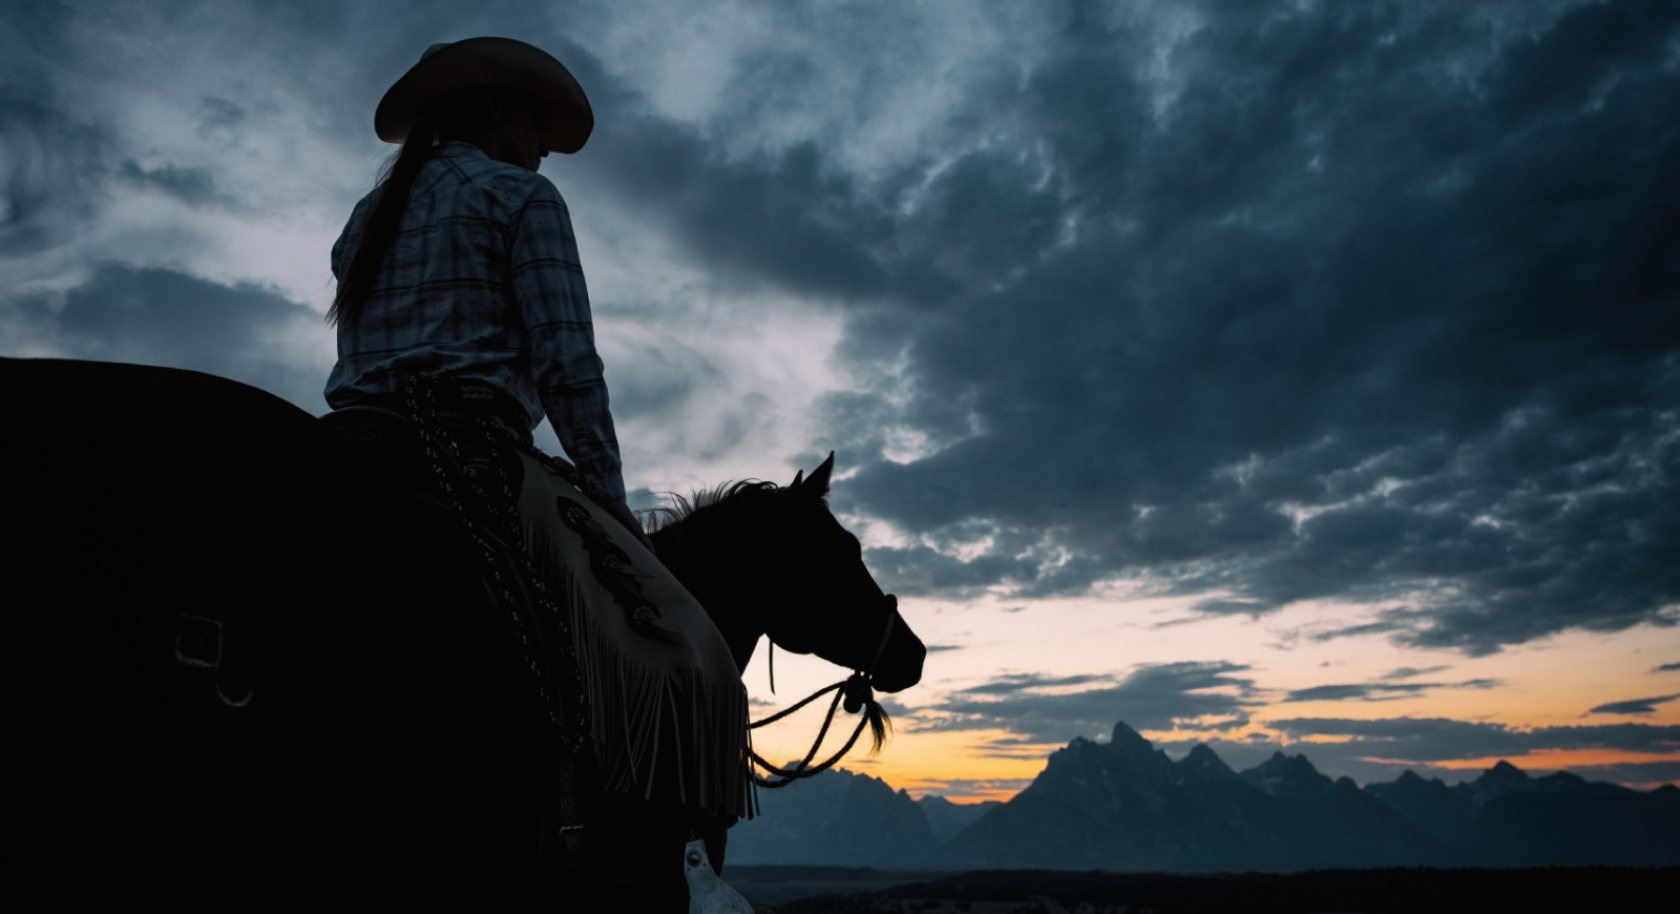 Woman on a horse looking out at the mountains at sunset